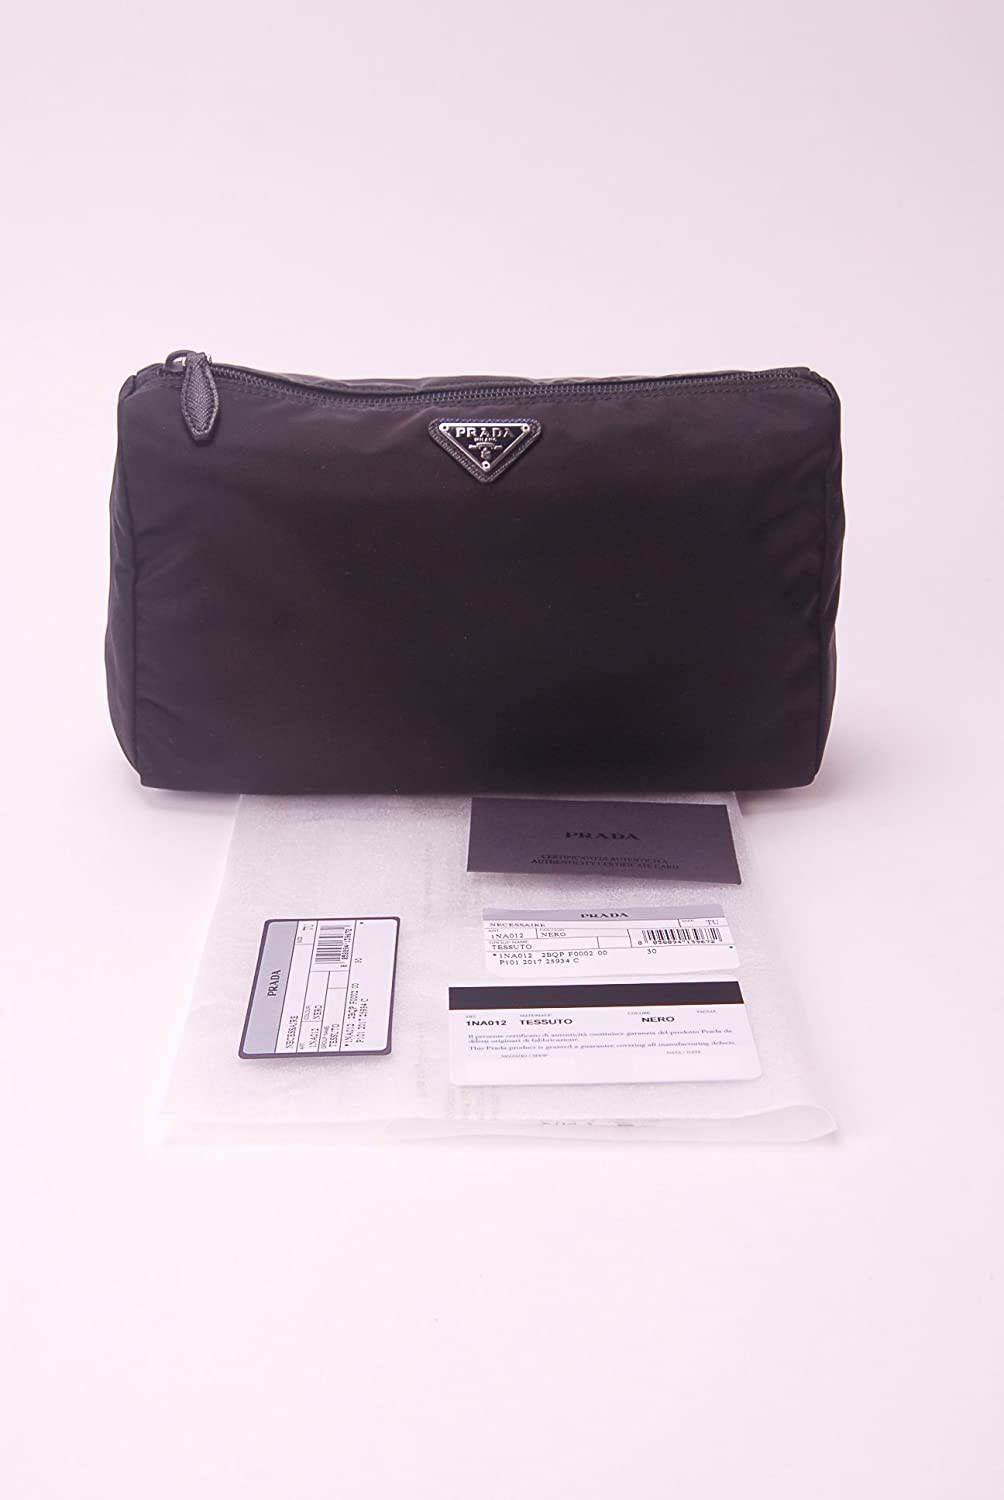 a3dec2e9fedc Amazon.com   Prada Large Unisex Toiletry and Cosmetics Travel Zippered Pouch  Case Bag in Tessuto Nylon and Saffiano Leather   Beauty